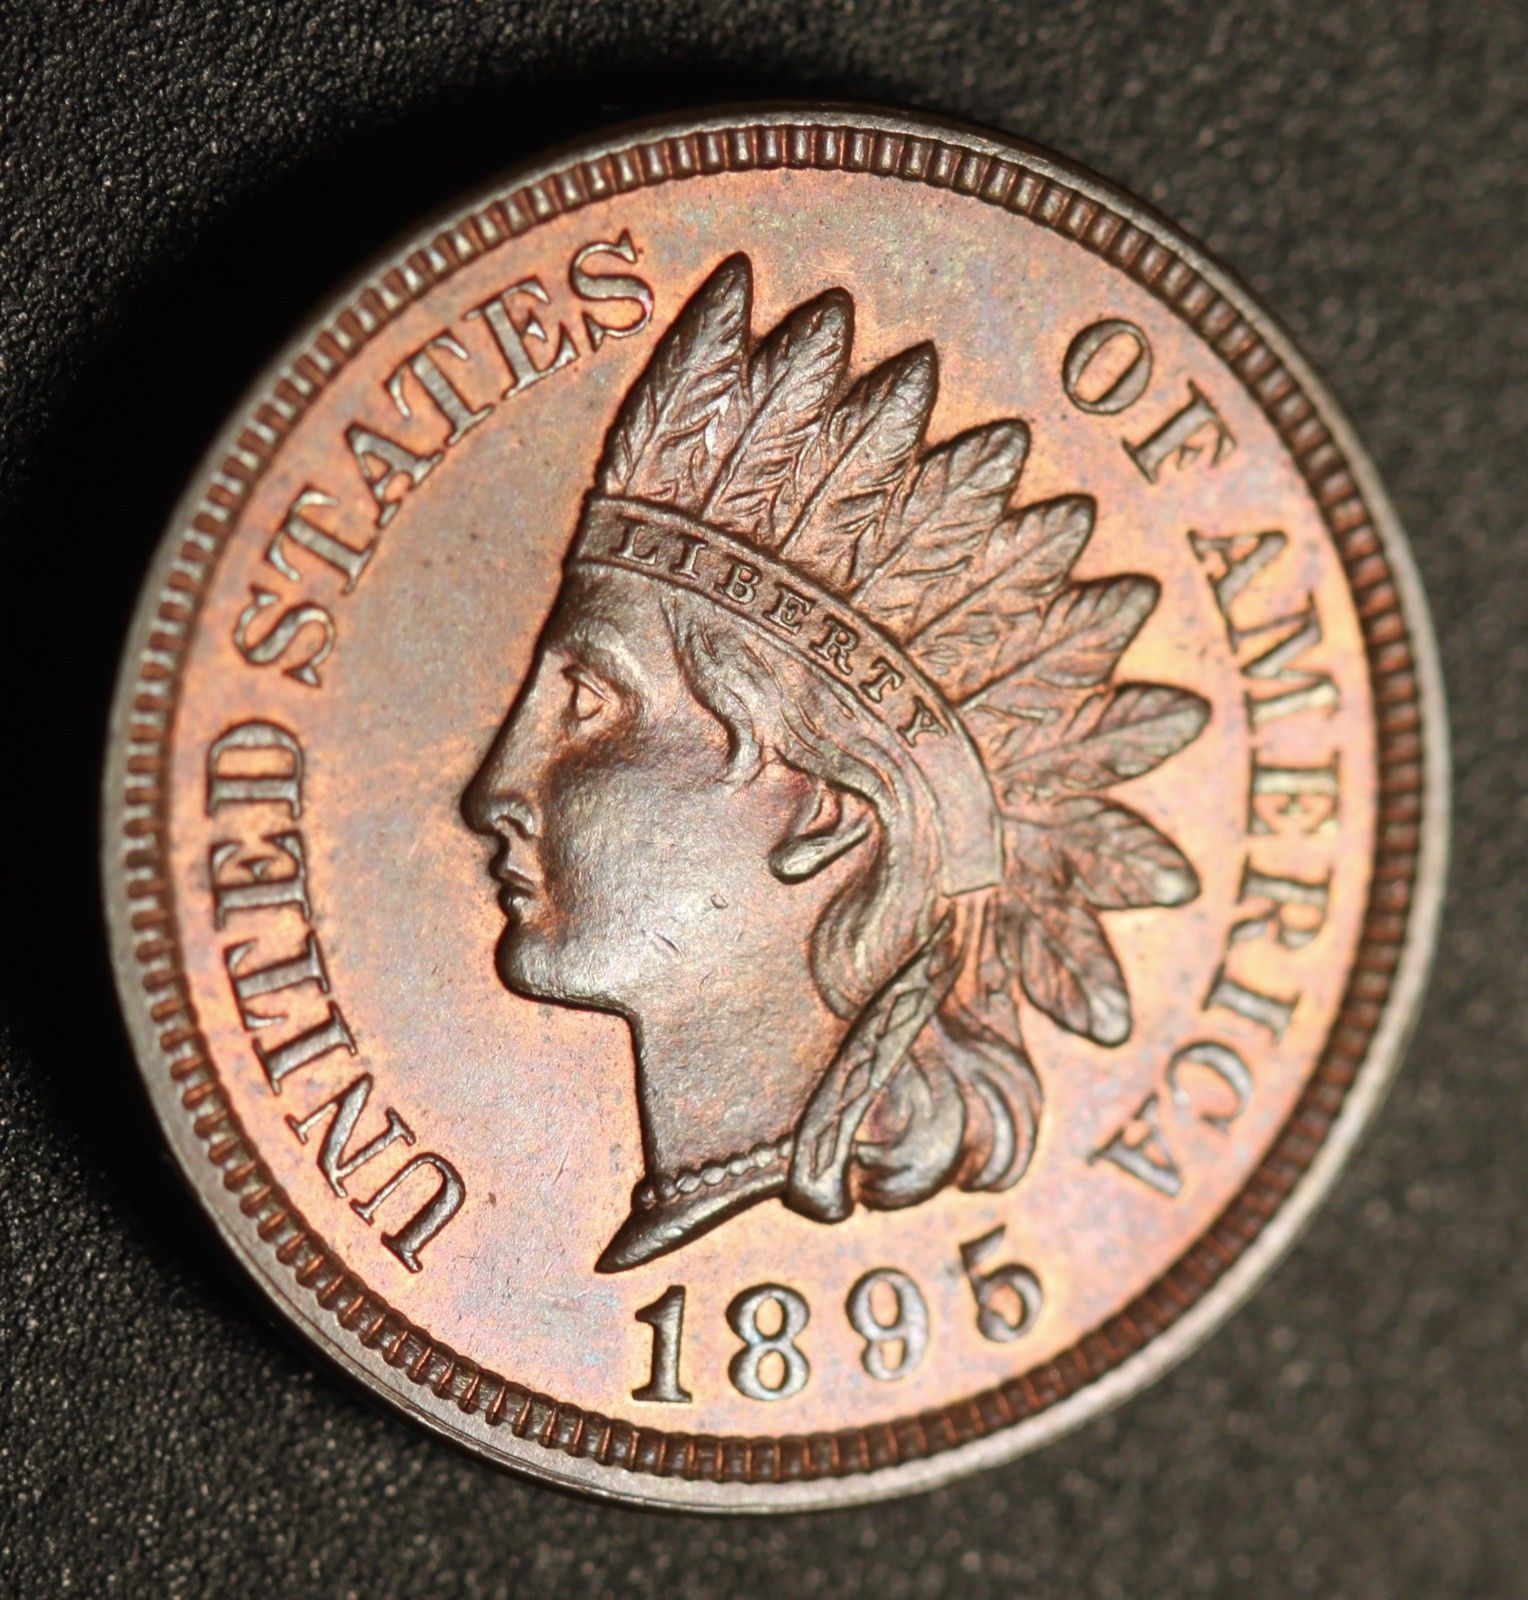 1895 RPD-010 - Indian Head Penny - Photo by Ed Nathanson